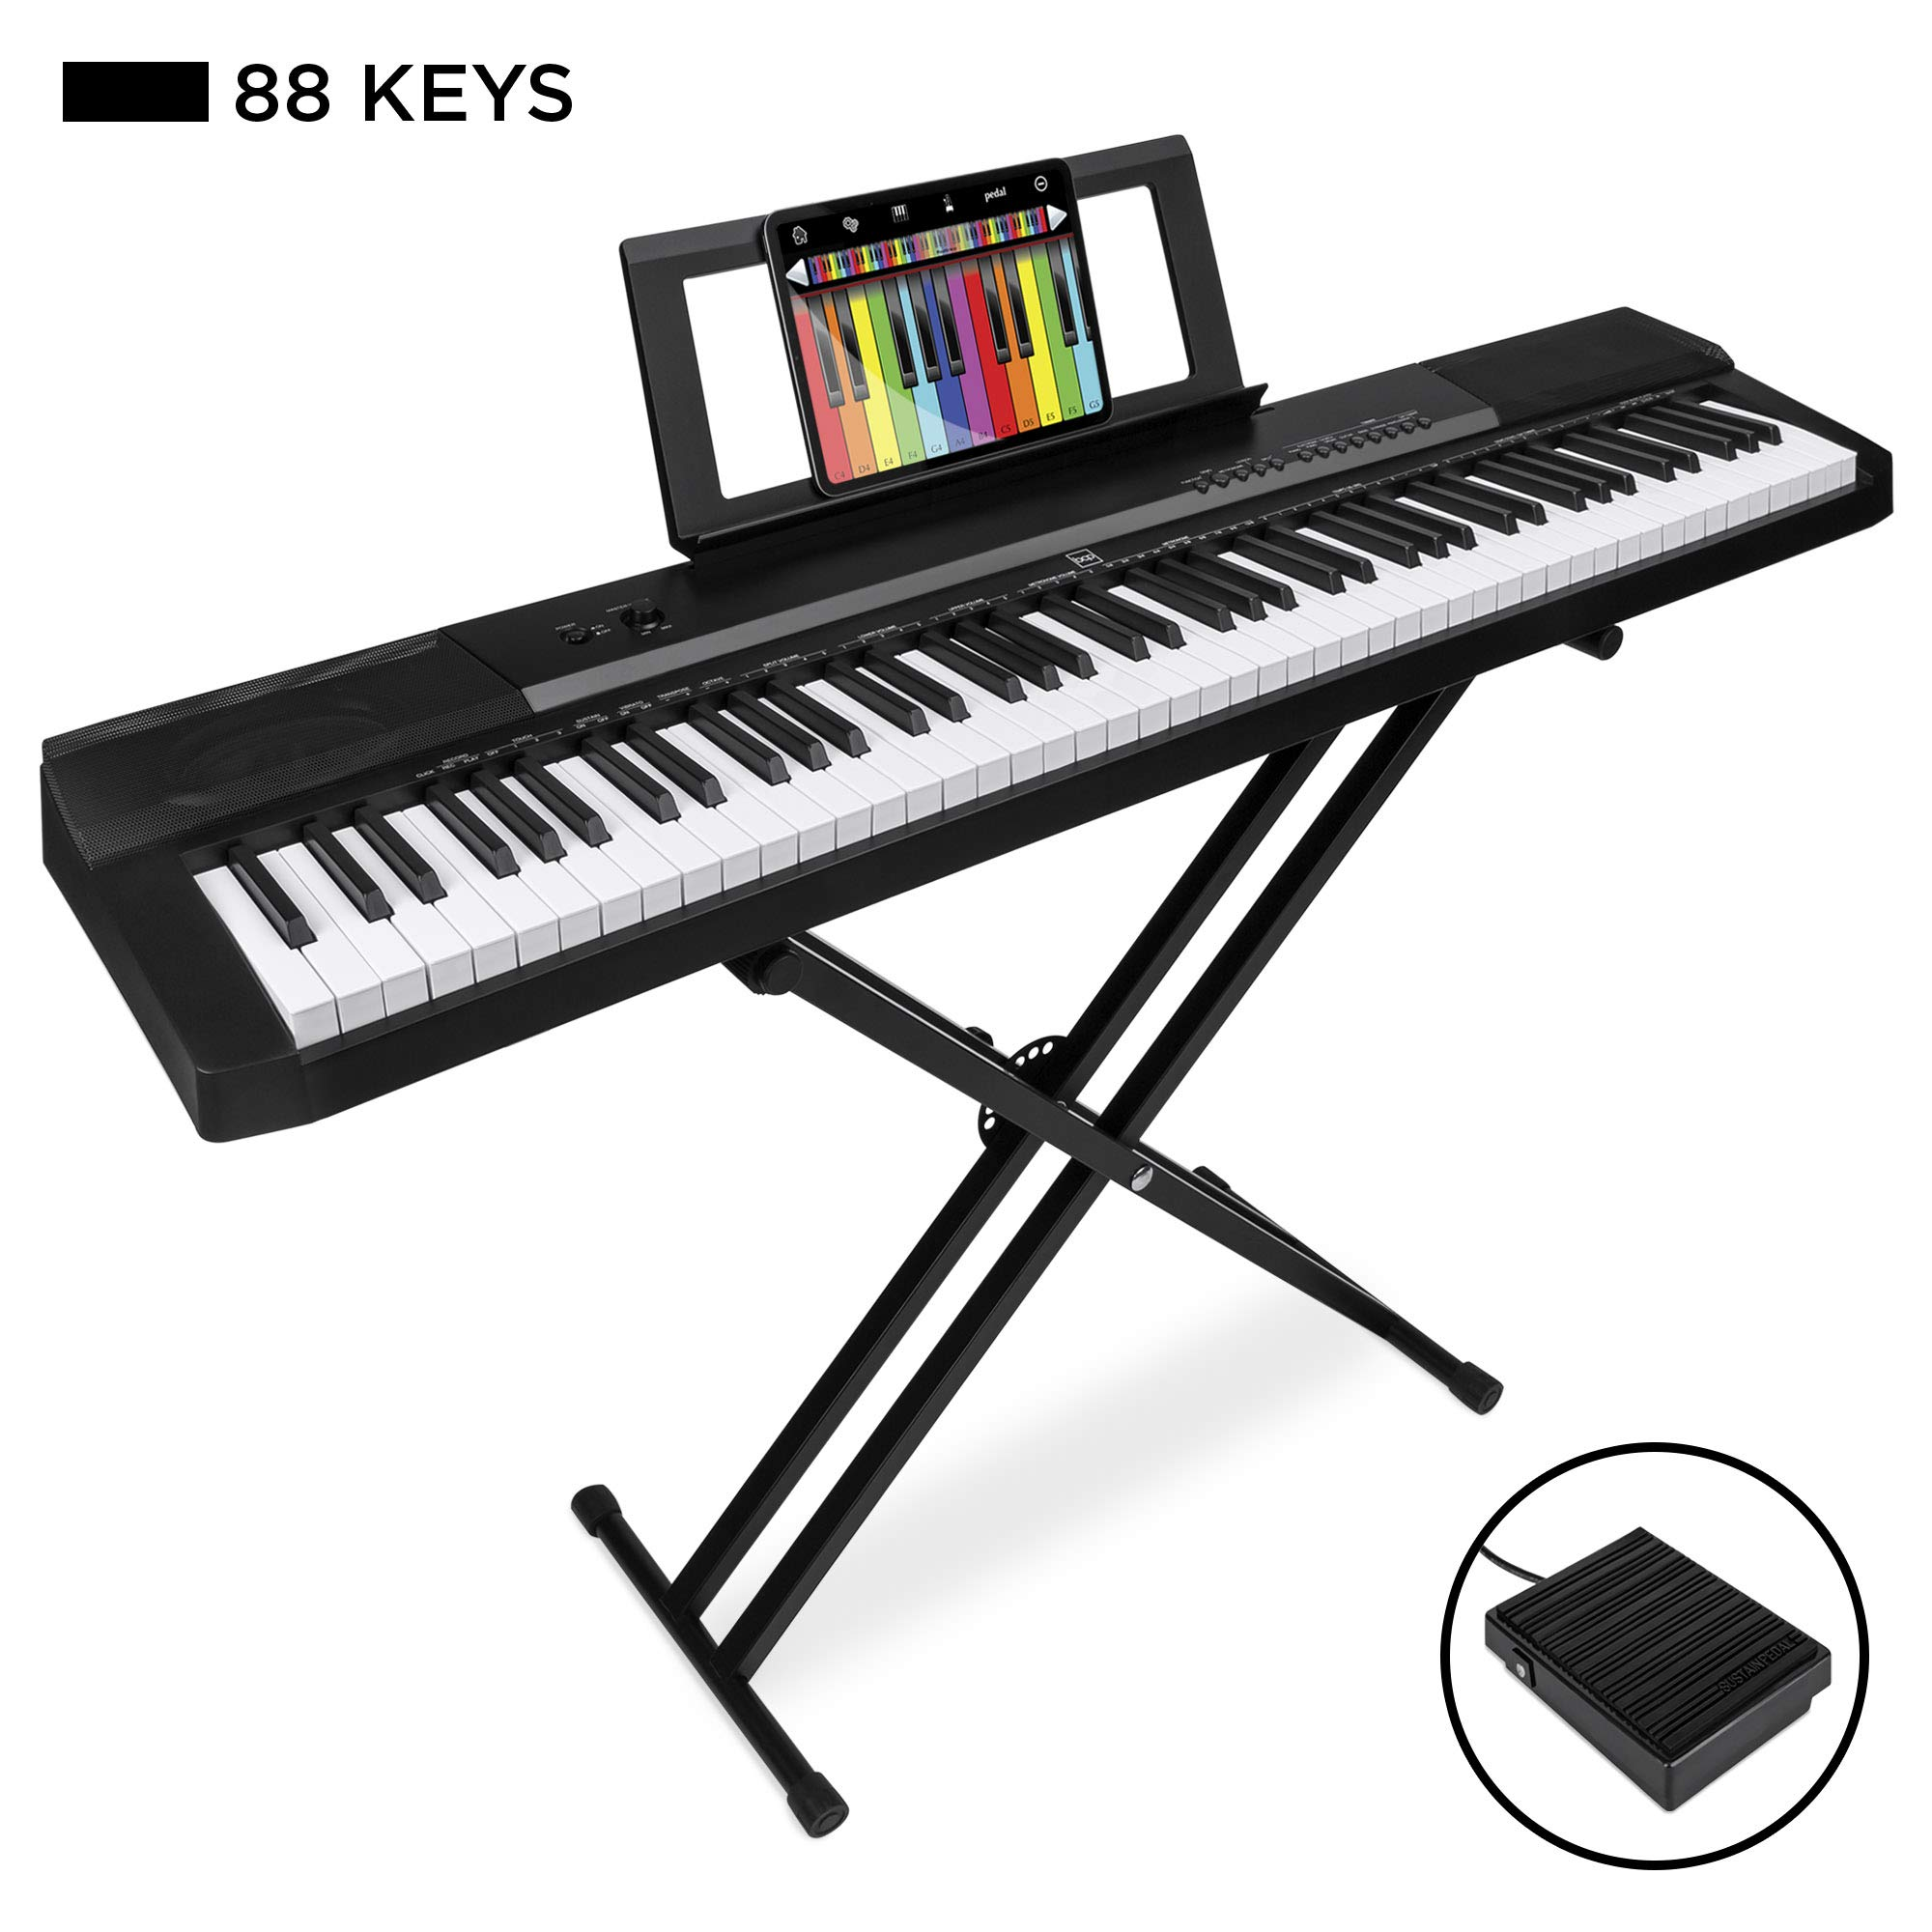 Best Choice Products 88-Key Full Size Digital Piano Electronic Keyboard Set w/Semi-Weighted Keys, Stand, Sustain Pedal, Built-In Speakers, Power Supply, 6 Voice Settings by Best Choice Products